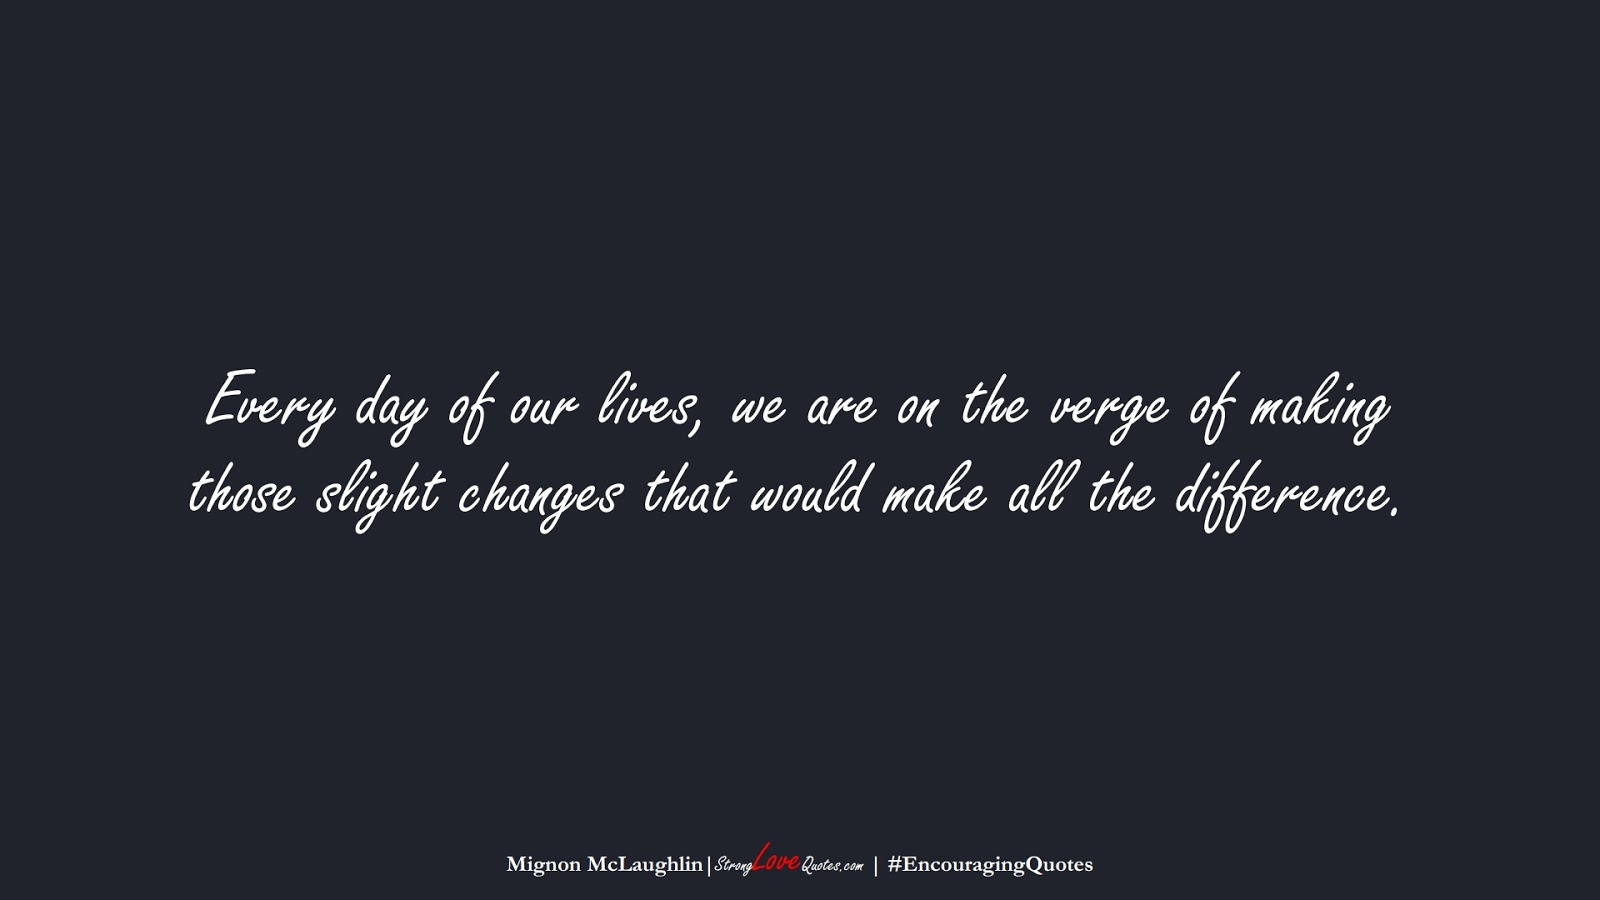 Every day of our lives, we are on the verge of making those slight changes that would make all the difference. (Mignon McLaughlin);  #EncouragingQuotes